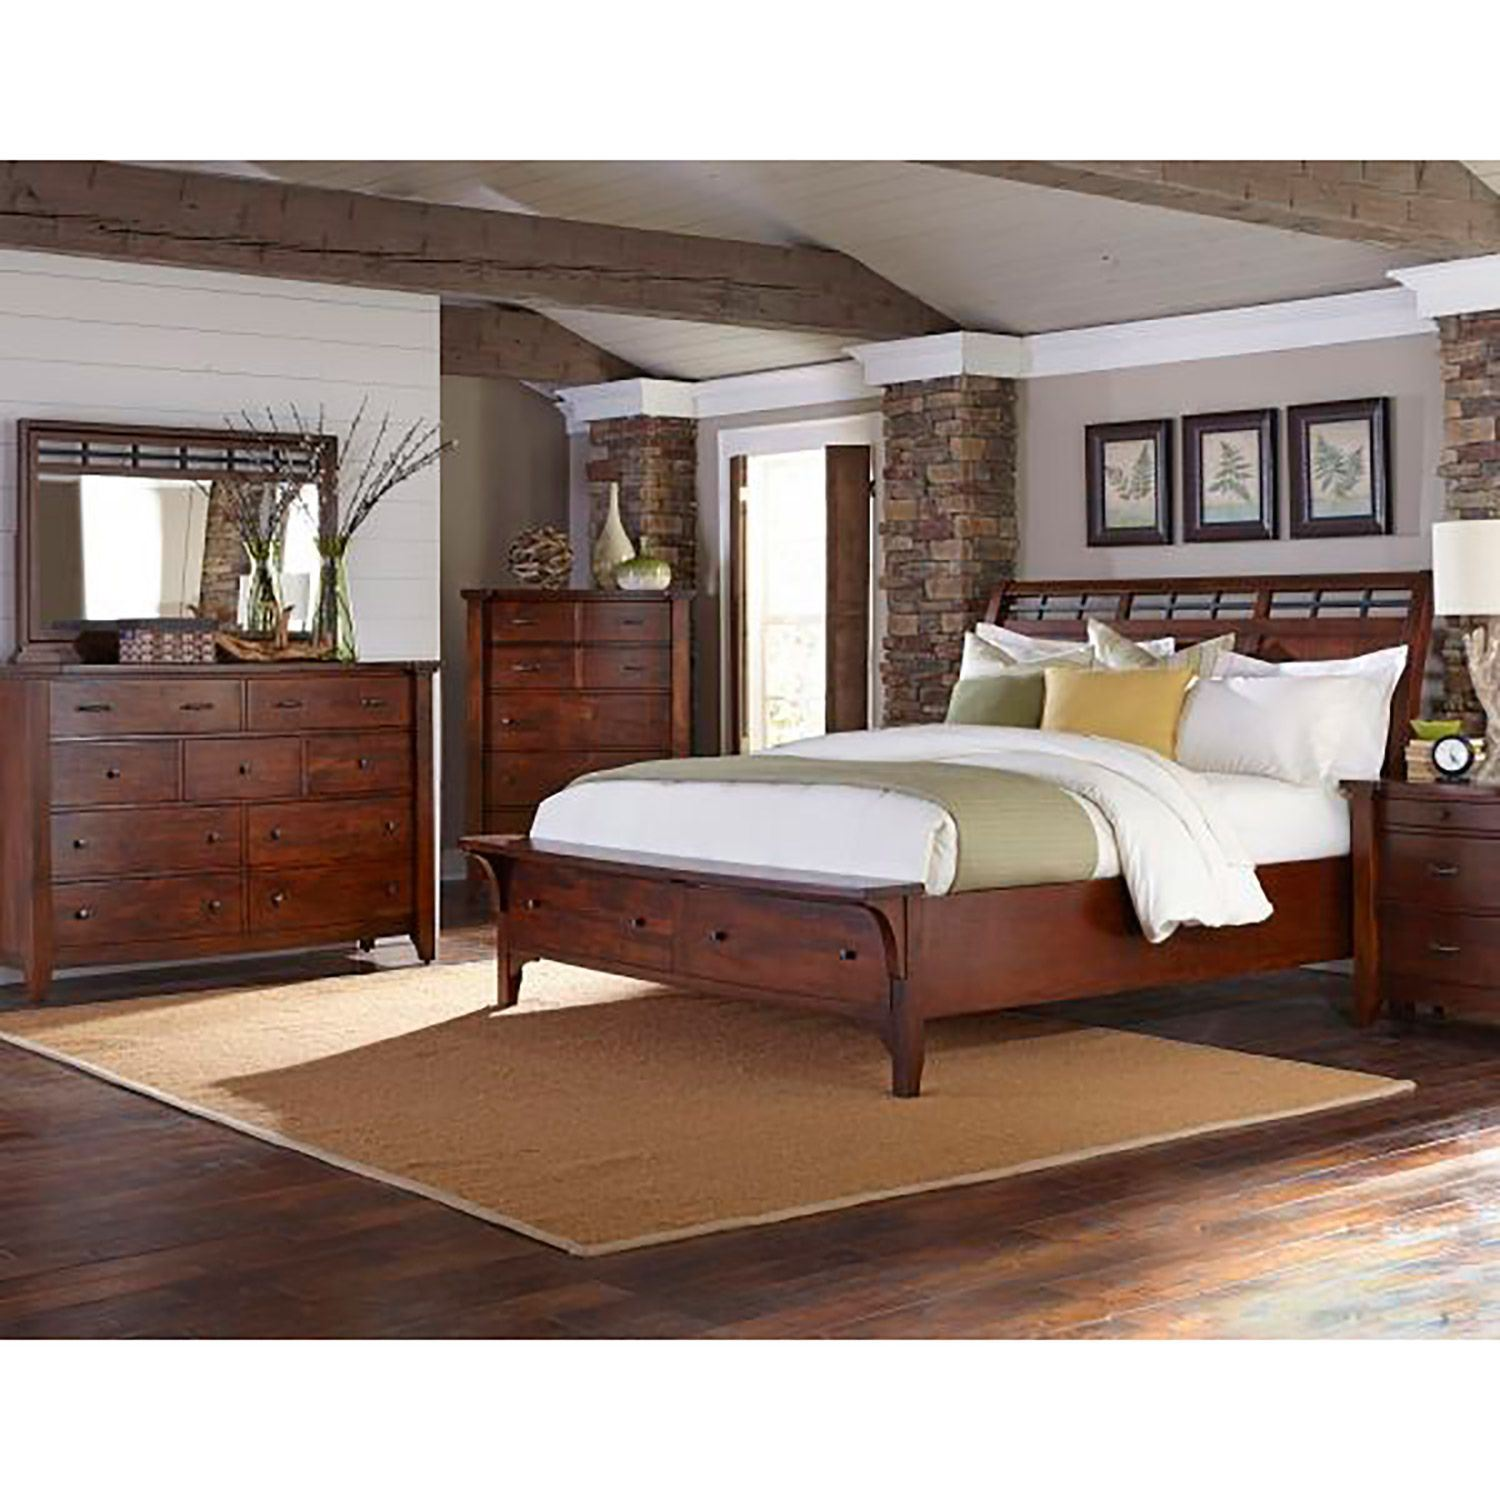 Picture of Whistler Retreat King Bed